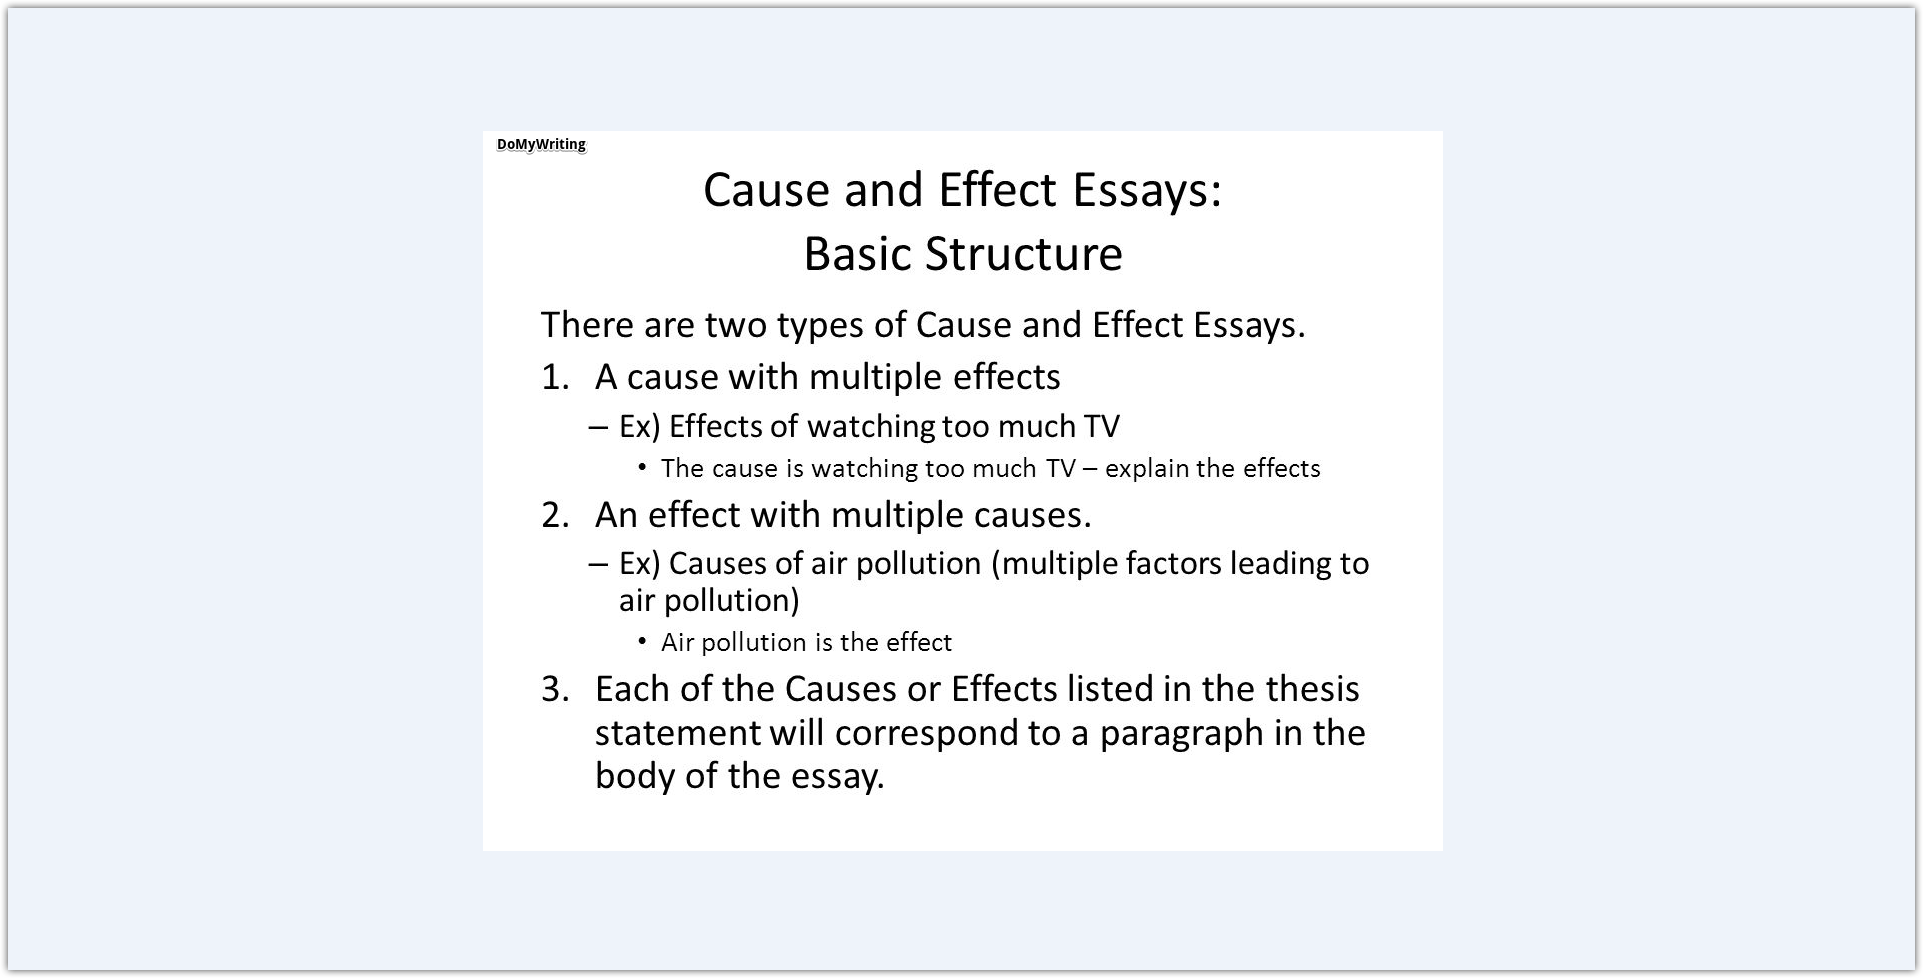 017 Essay Topics Cause And Effect Structure Archaicawful Writing For 6th Graders List Ielts Prompts 5th Full